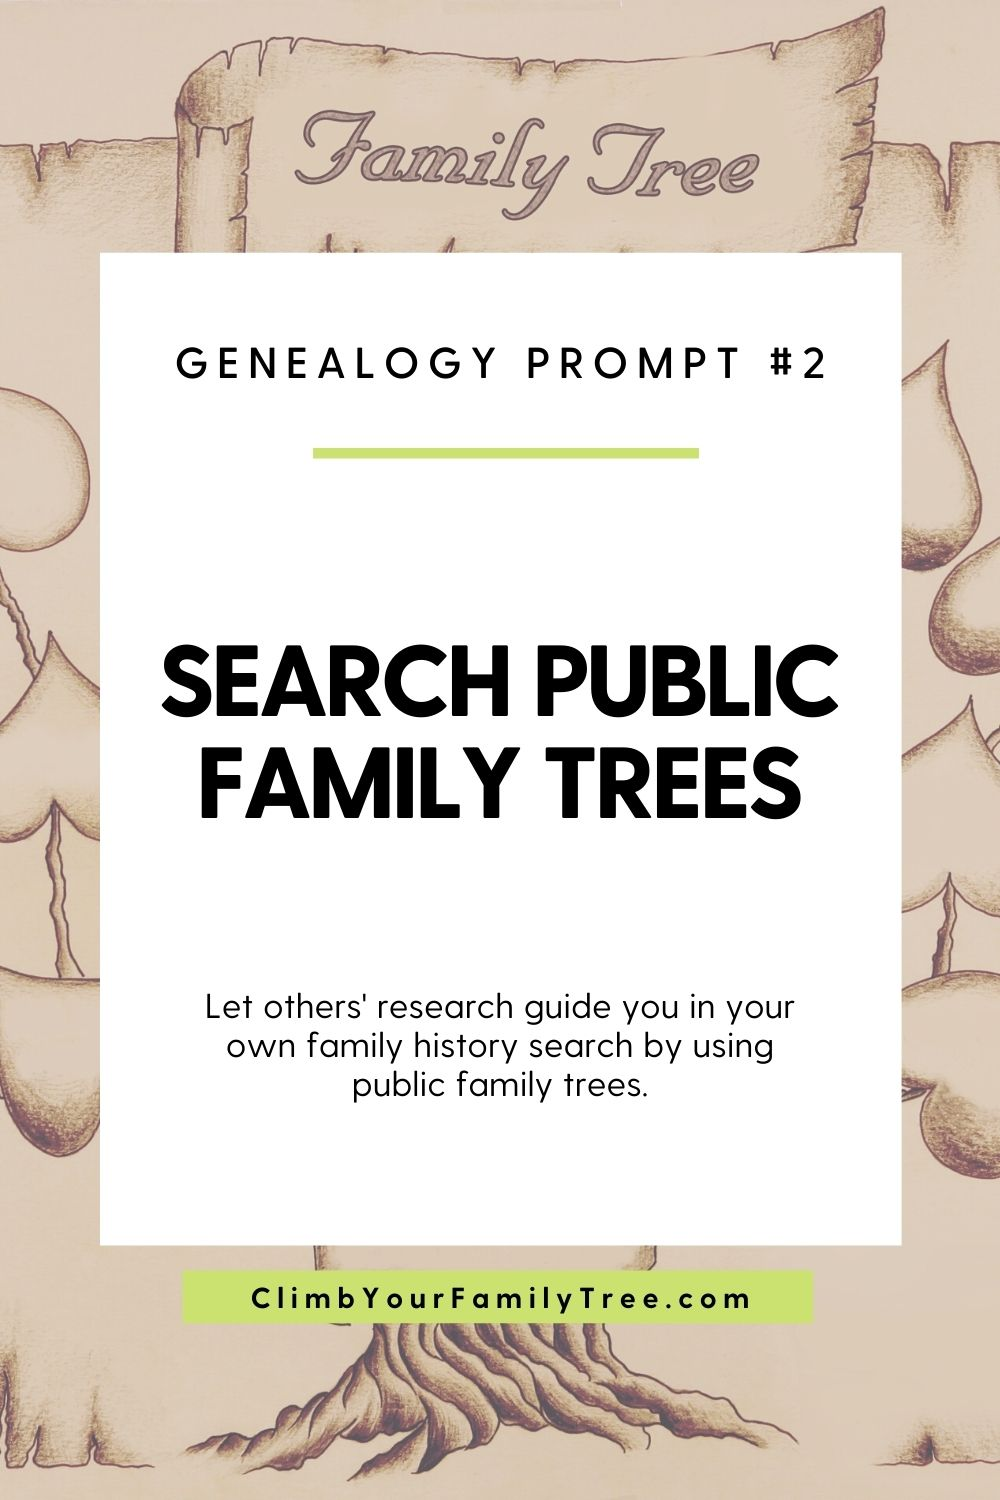 Genealogy prompt 2 - Search public family trees - Let others research guide you in your own family history search by using public family trees - ClimbYourFamilyTree.com